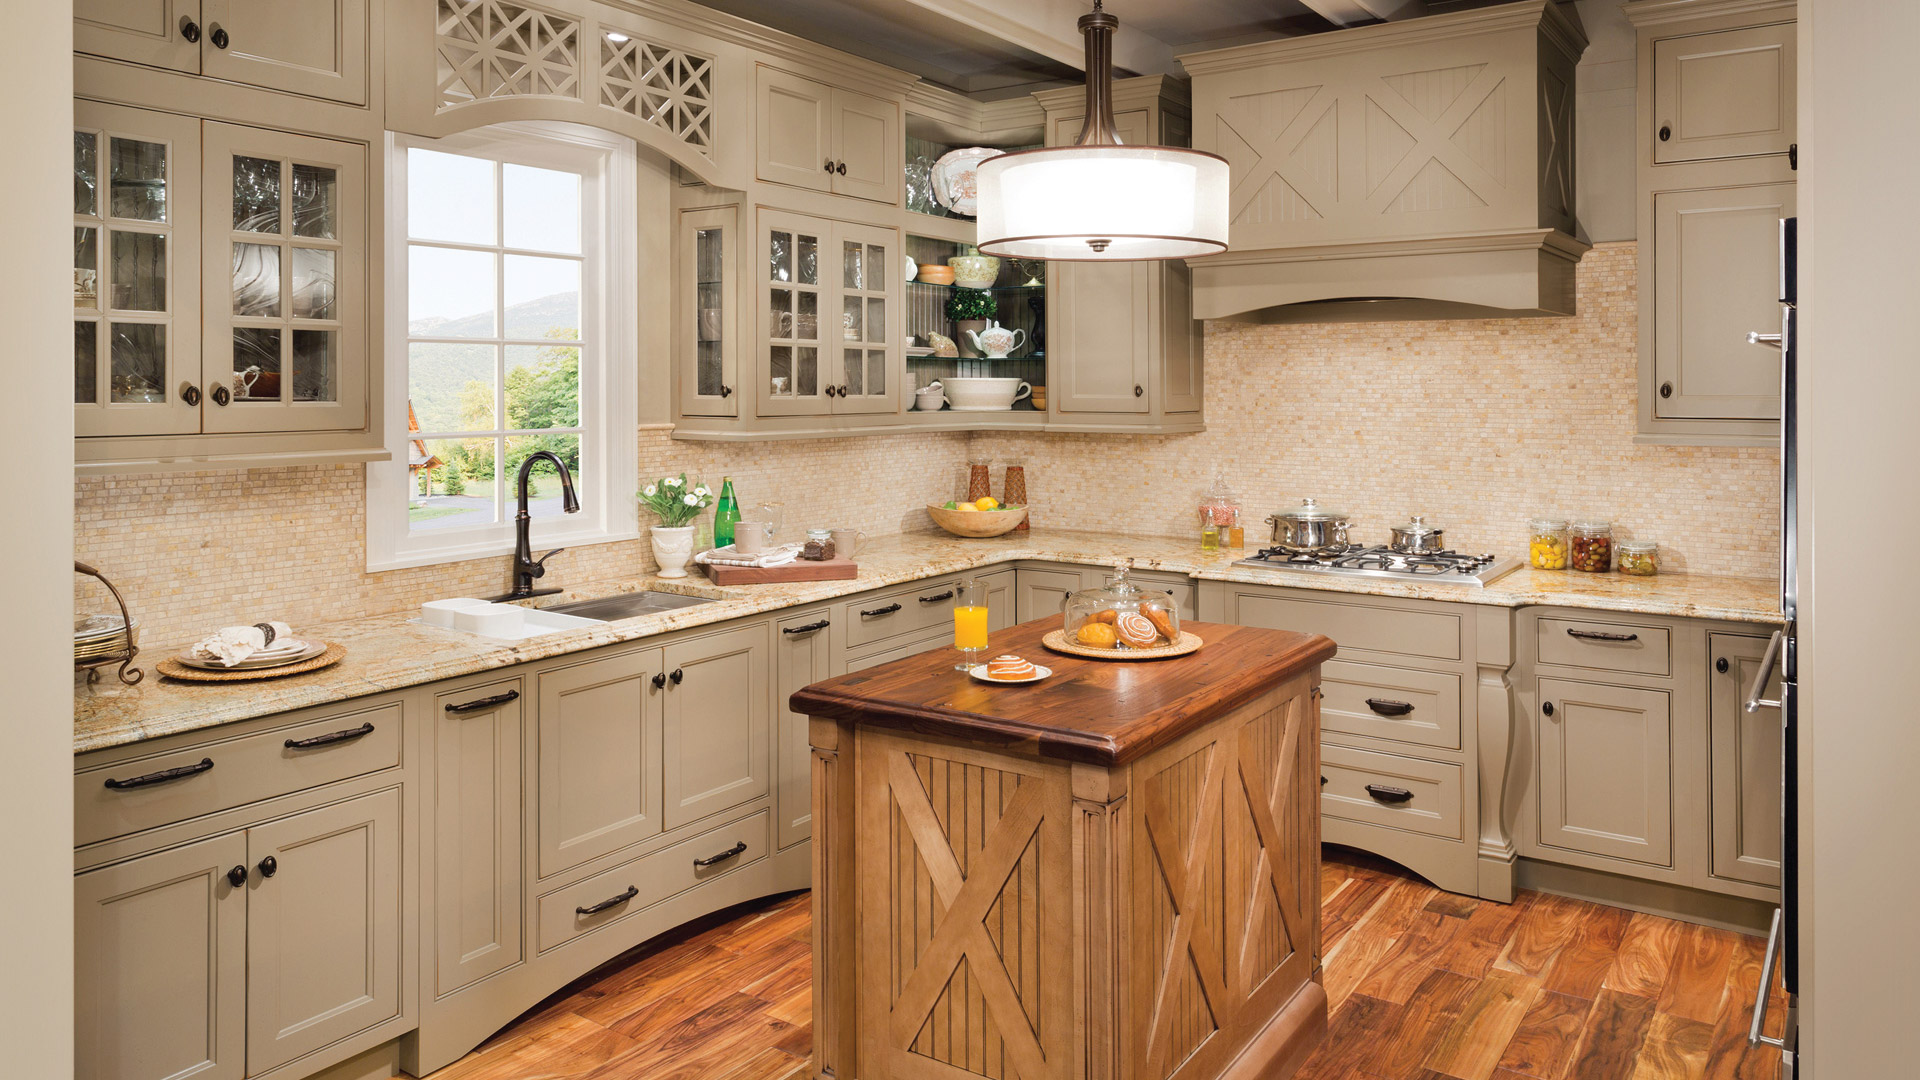 DIY Kitchen CabinetsReplacing The Conventional Goods